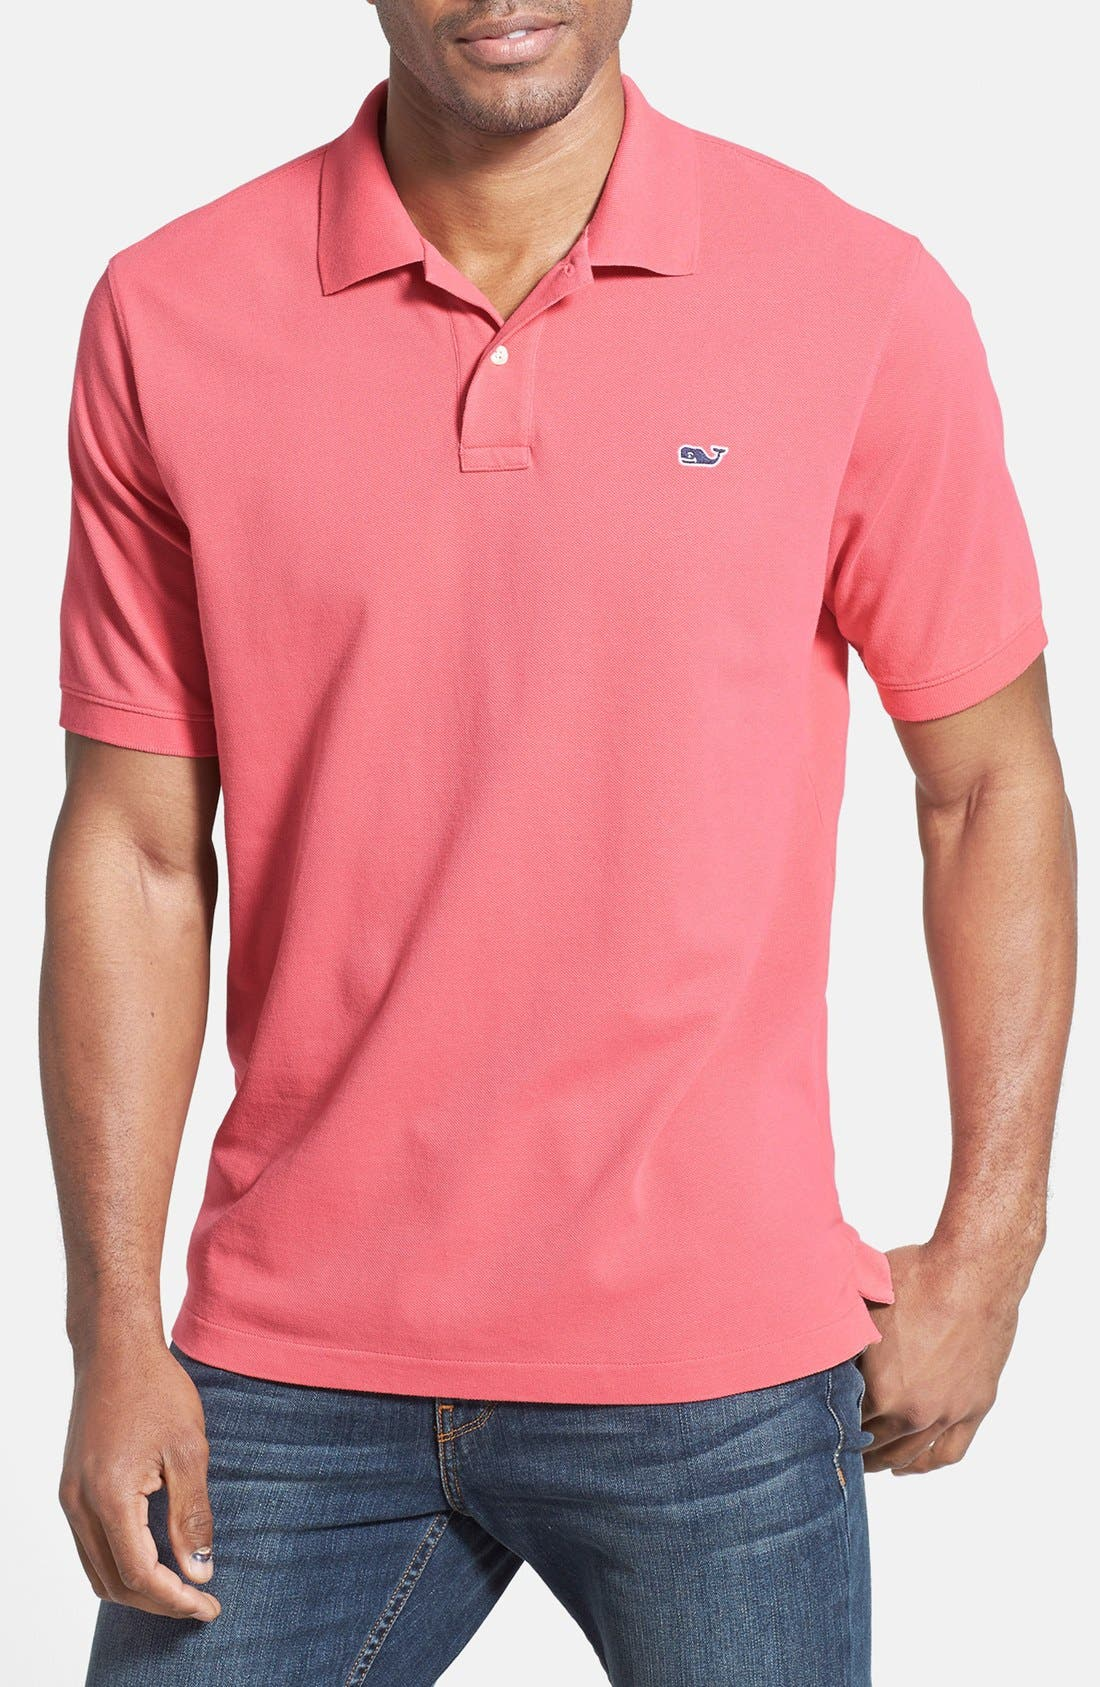 Vineyard Vines 'Classic' Piqué Knit Polo